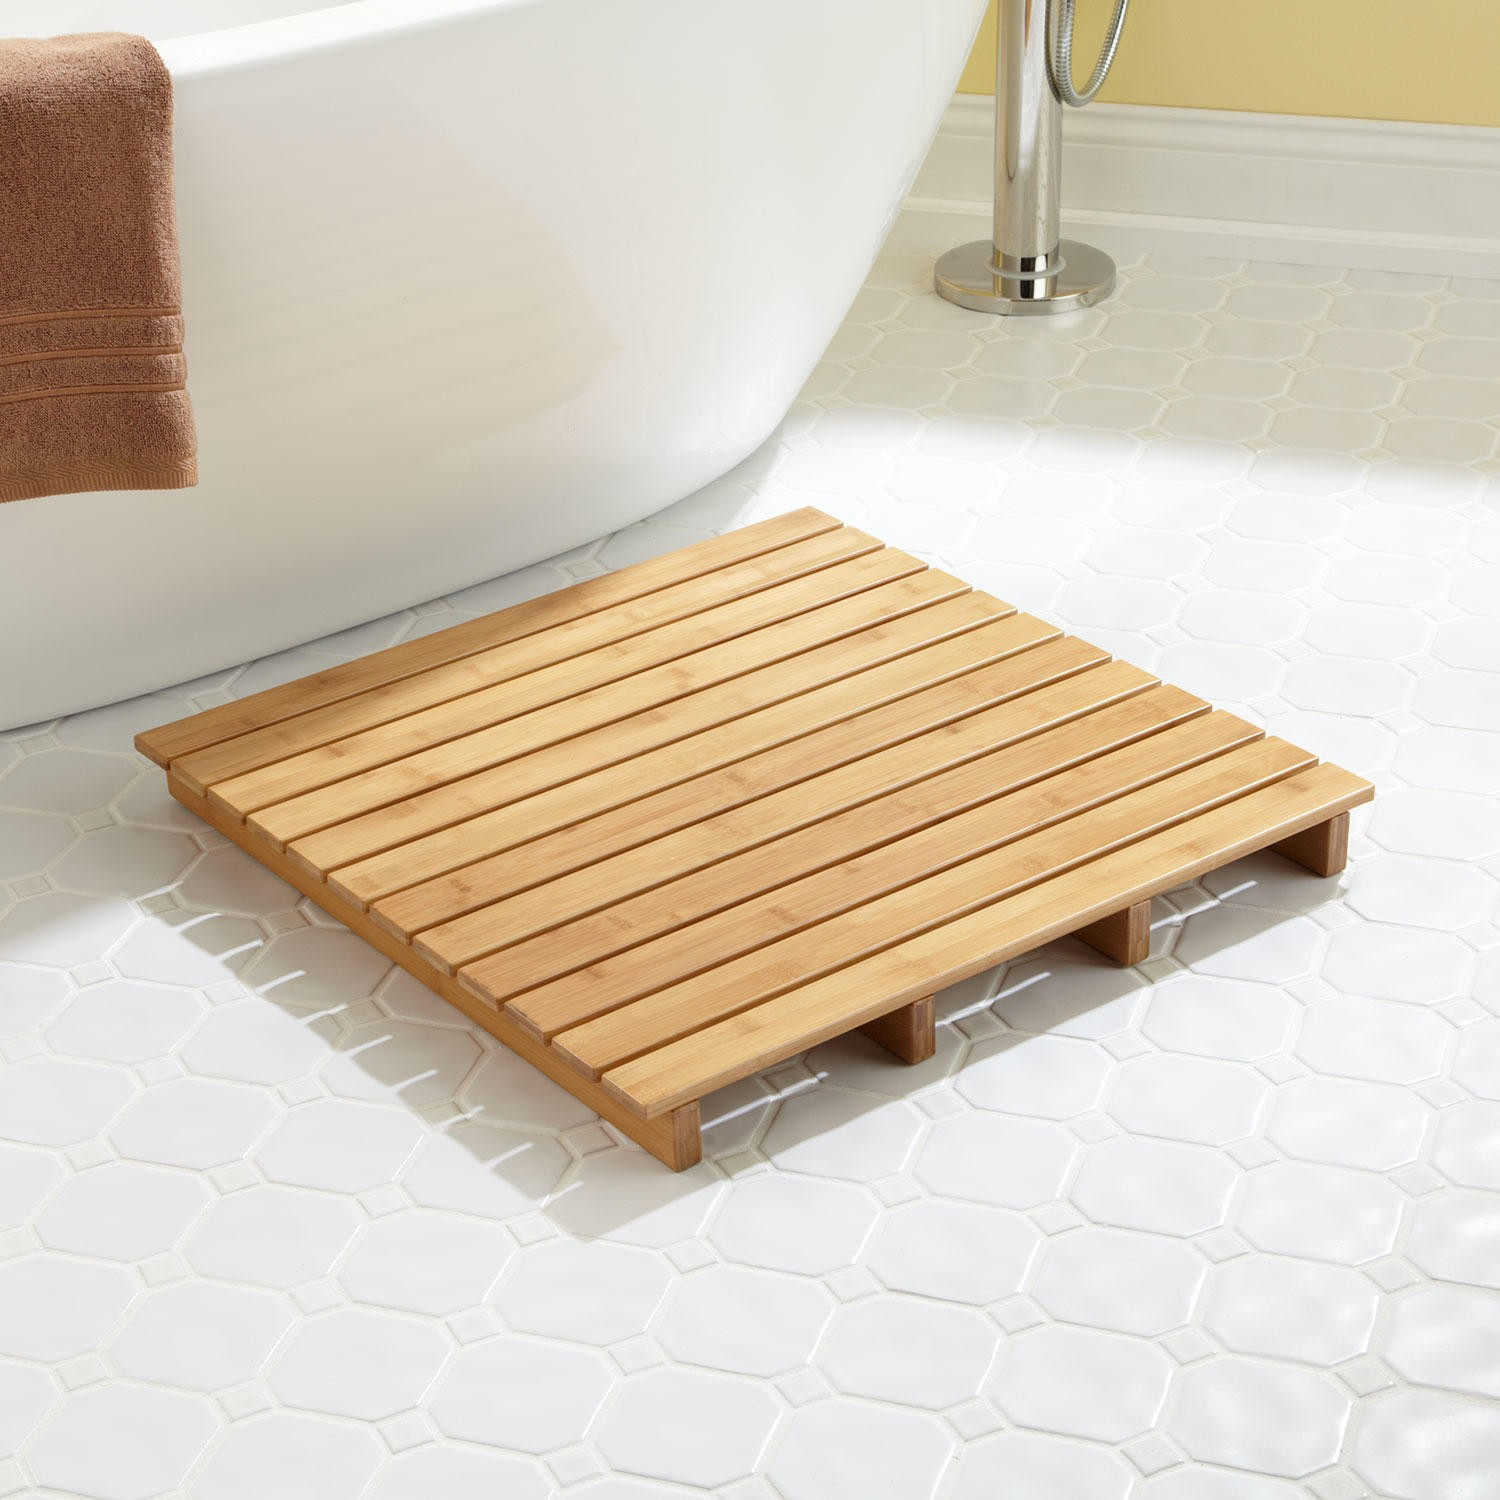 Bath Mat Ideas To Make Your Bathroom Feel More Like A Spa - In bath mat for bathroom decorating ideas